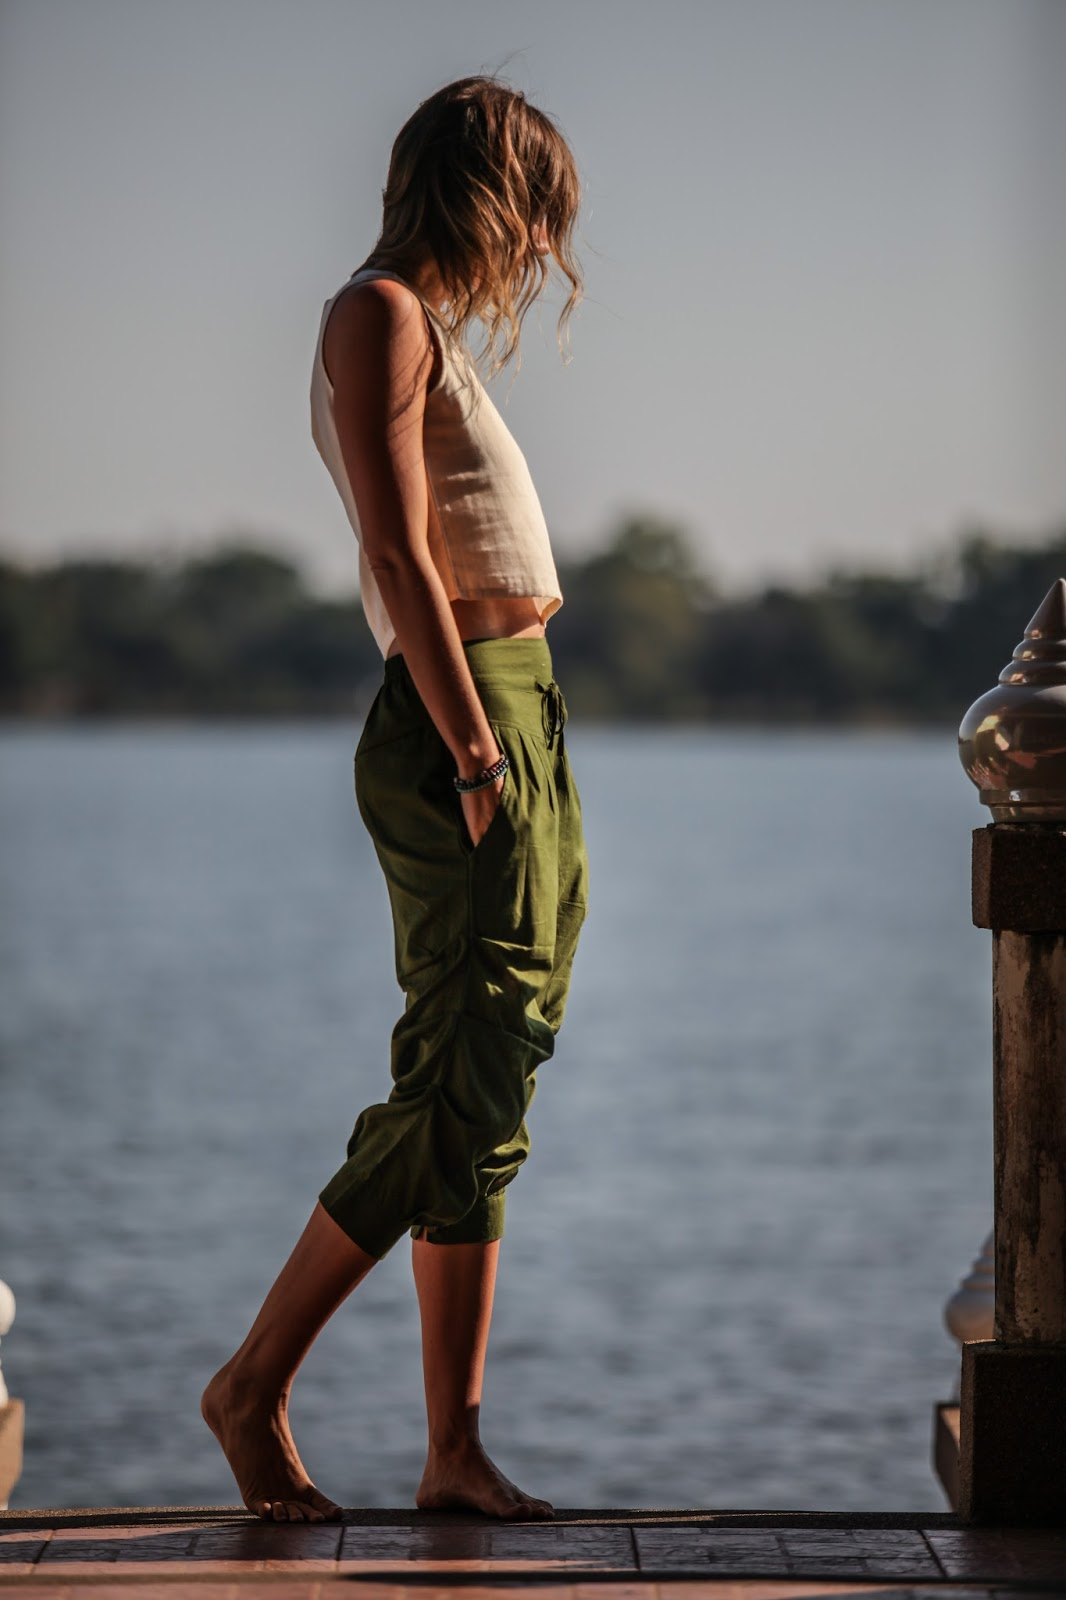 fashion and travel blogger, Alison Hutchinson, is wearing an entire look by Tropic Bliss while at the lake in Chiang Mai, Thailand